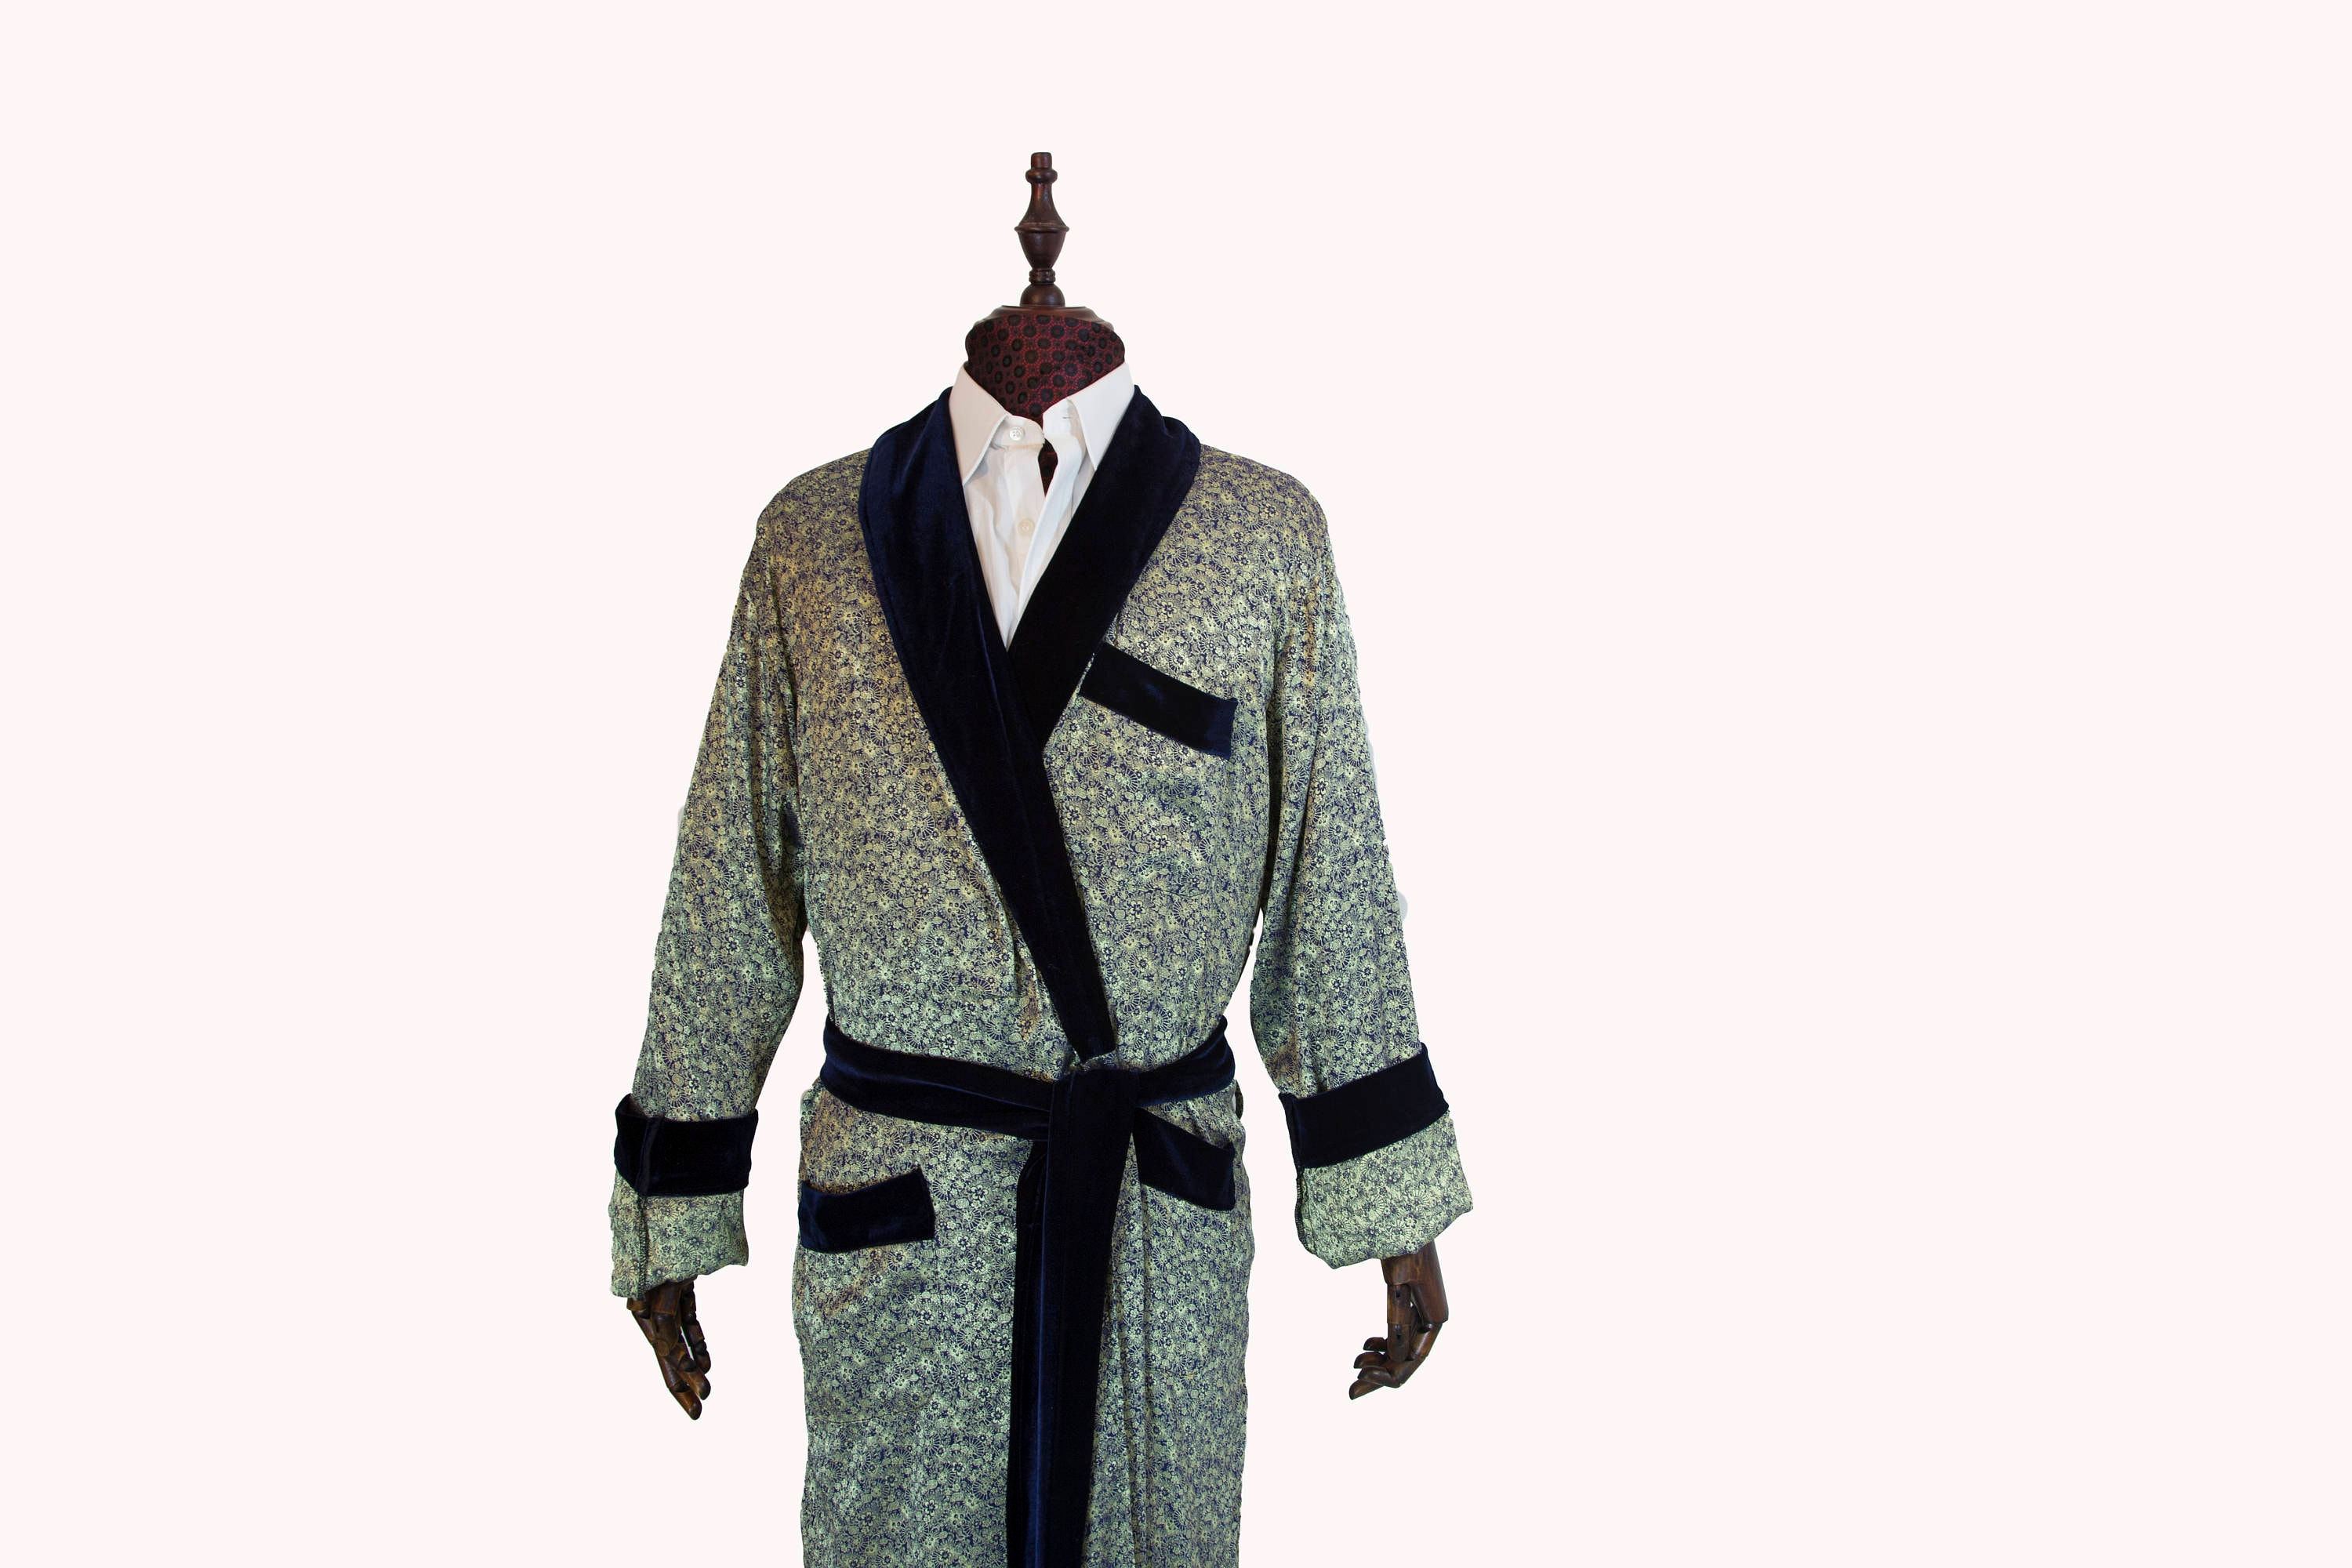 Silk Sleeping Gown for Men, SILK SOFT for Men Dressing Gown, Night ...